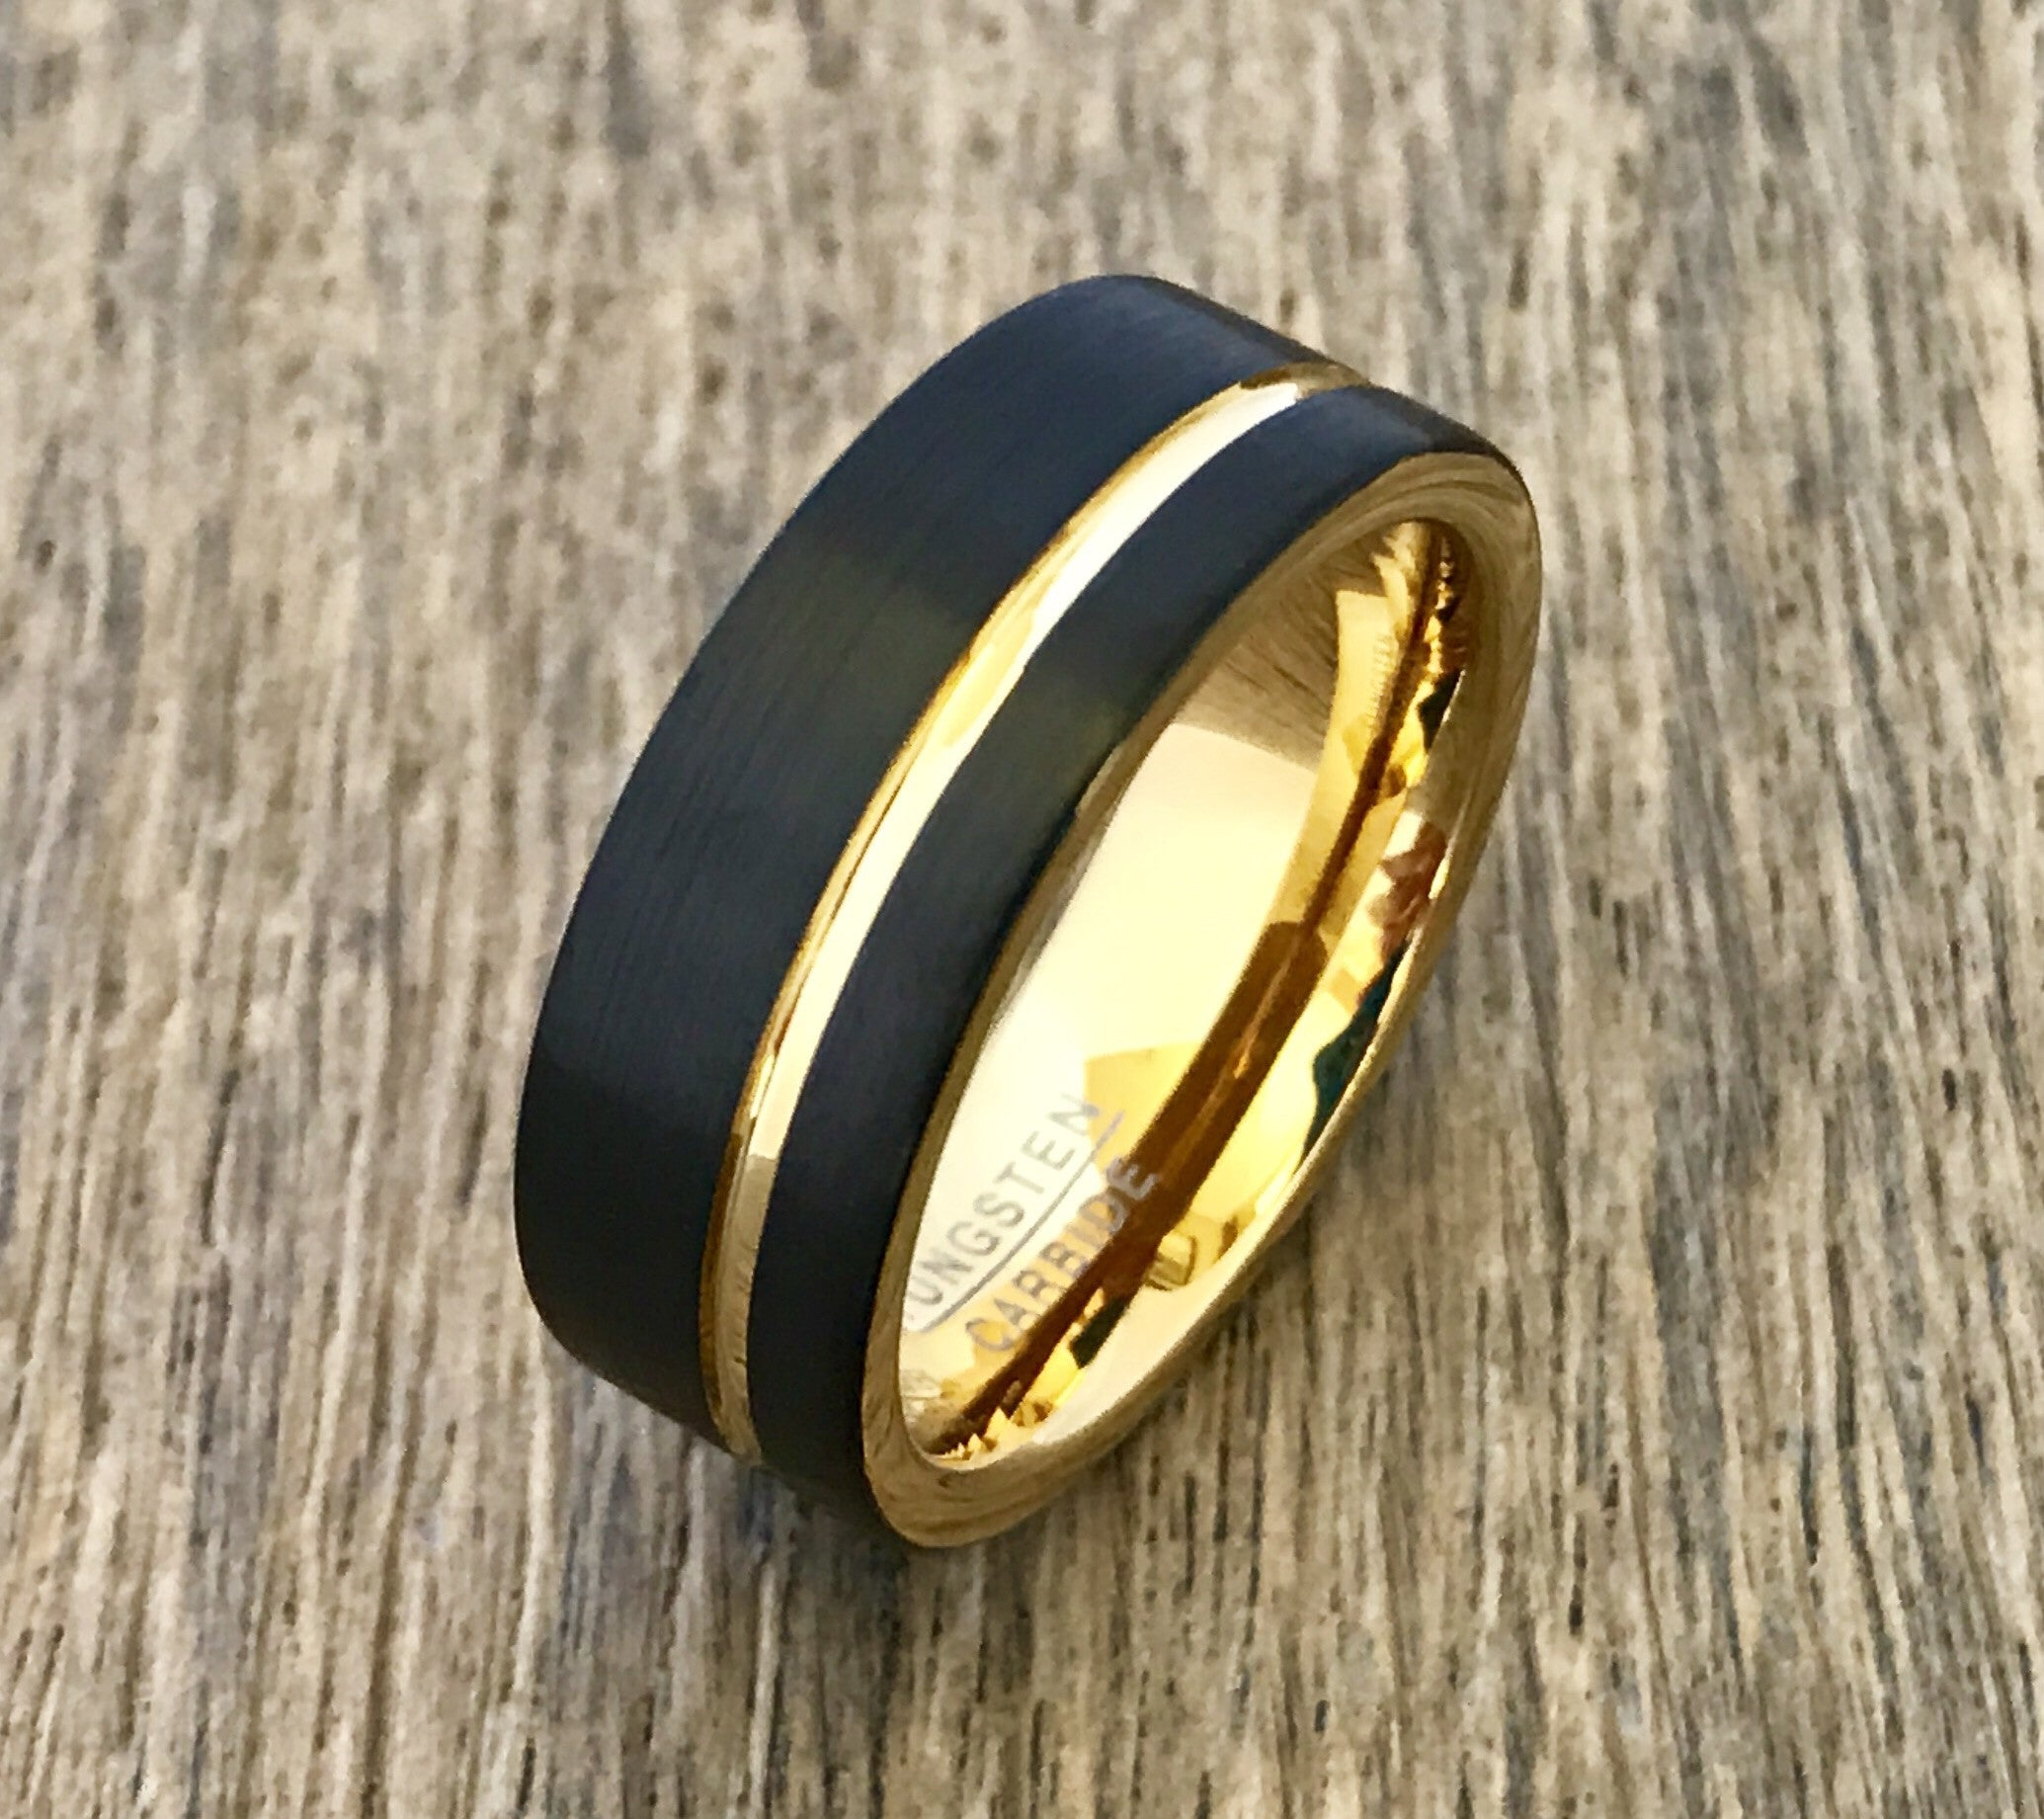 for com rikof ring signet yx wedding rings p and gold bands band plated boys men unique of mens black sizes inspirational